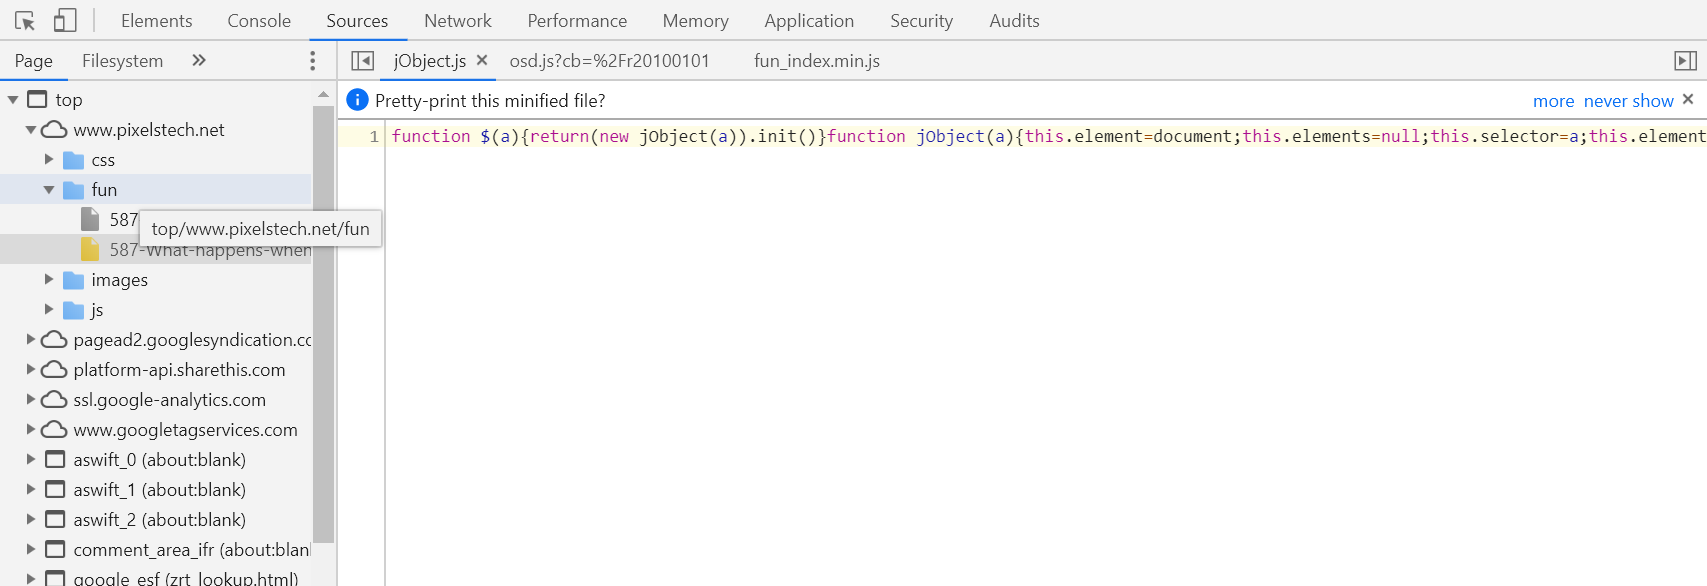 How to use Chome dev tool to find event handler bound to an element